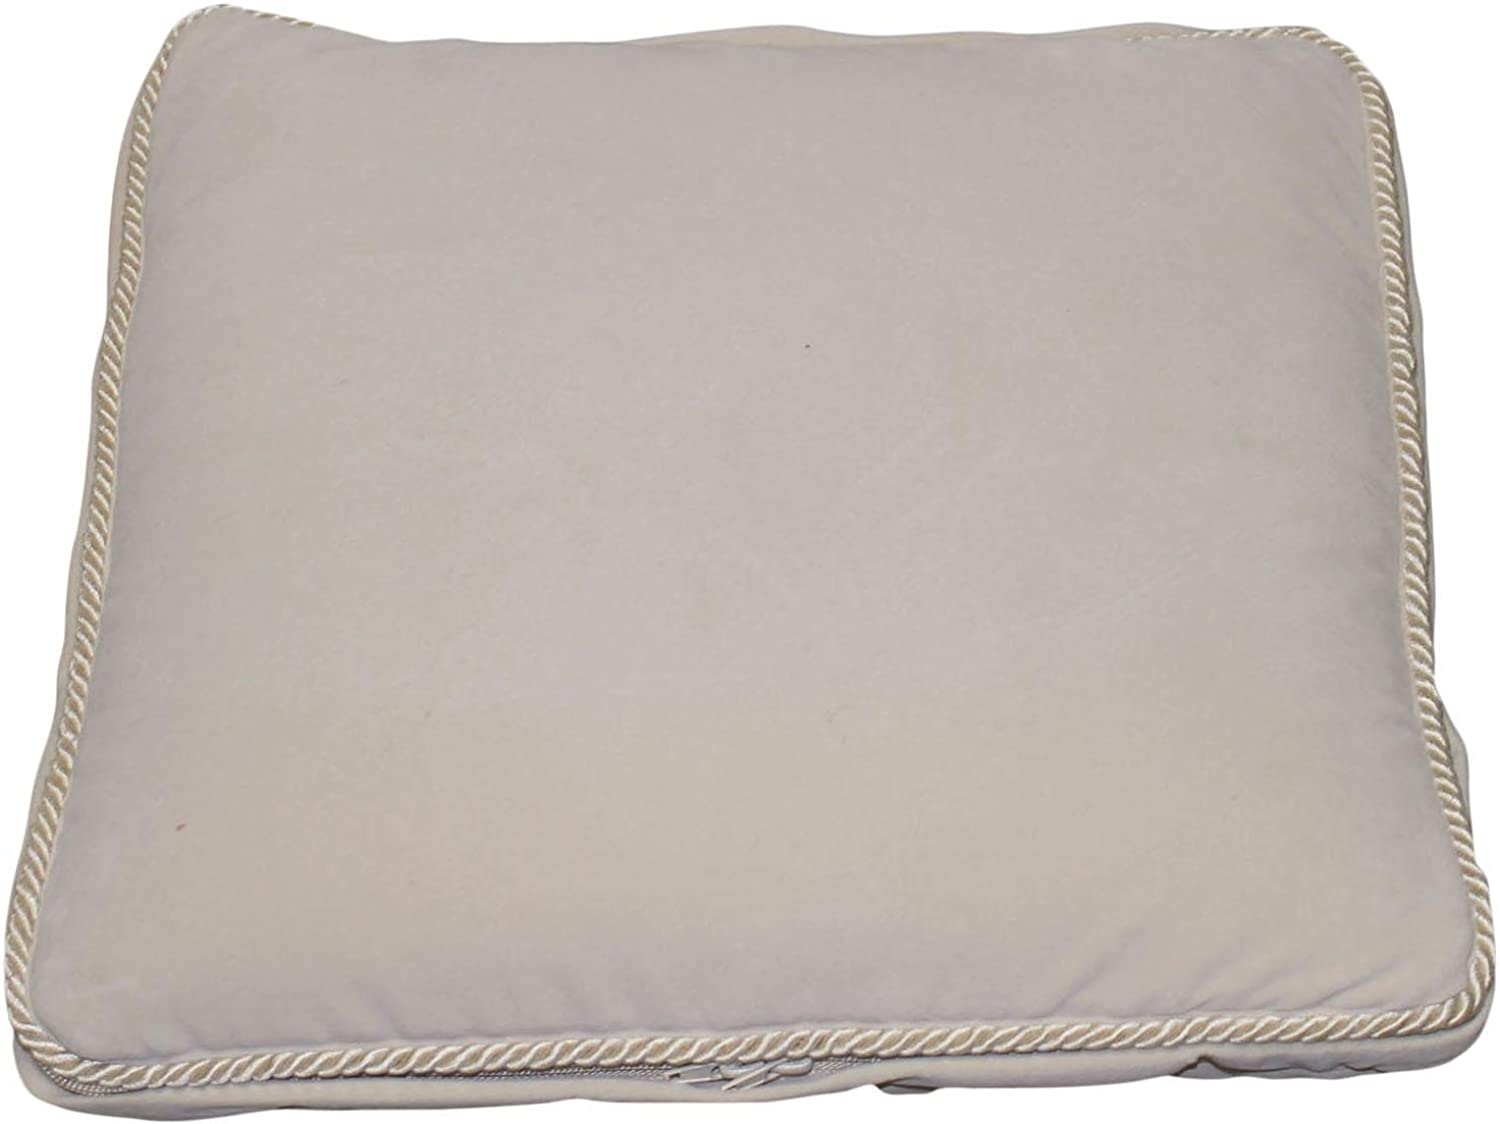 Carolina Pet Ultimate Pillow with Quilted Throw for Pets, Linen